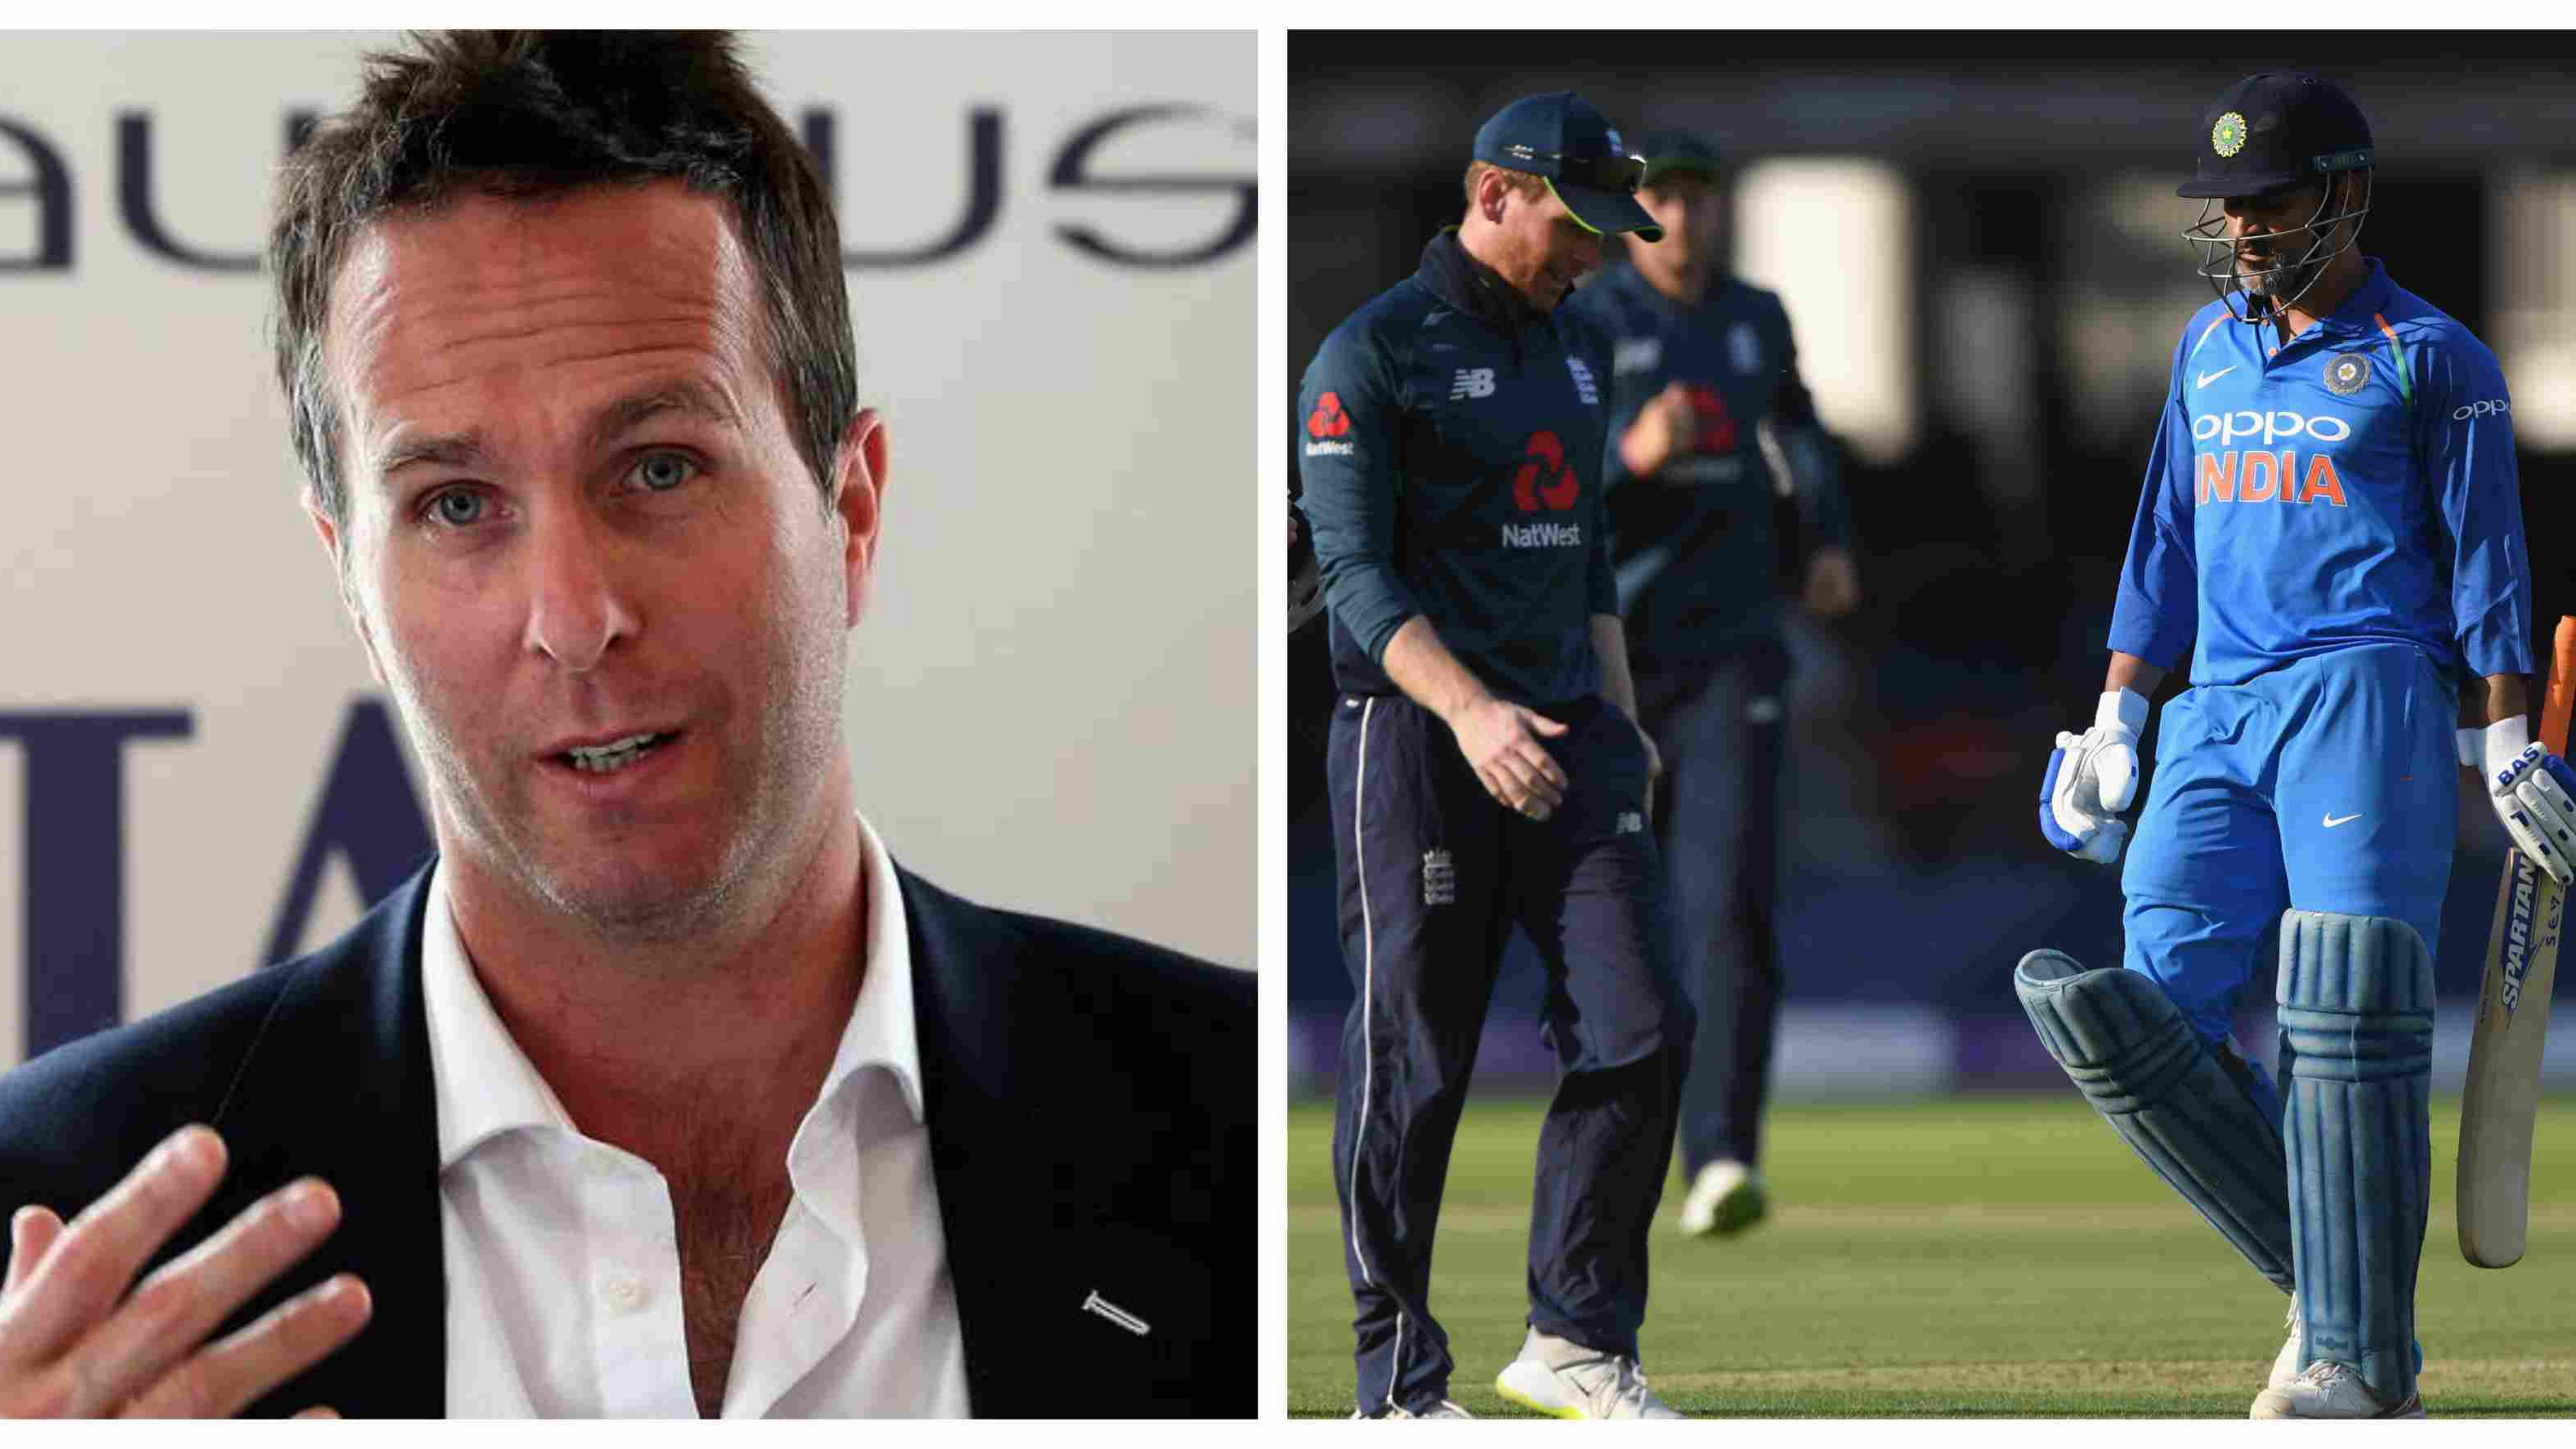 ENG v IND 2018: Michael Vaughan slams India's poor batting show in Lord's ODI